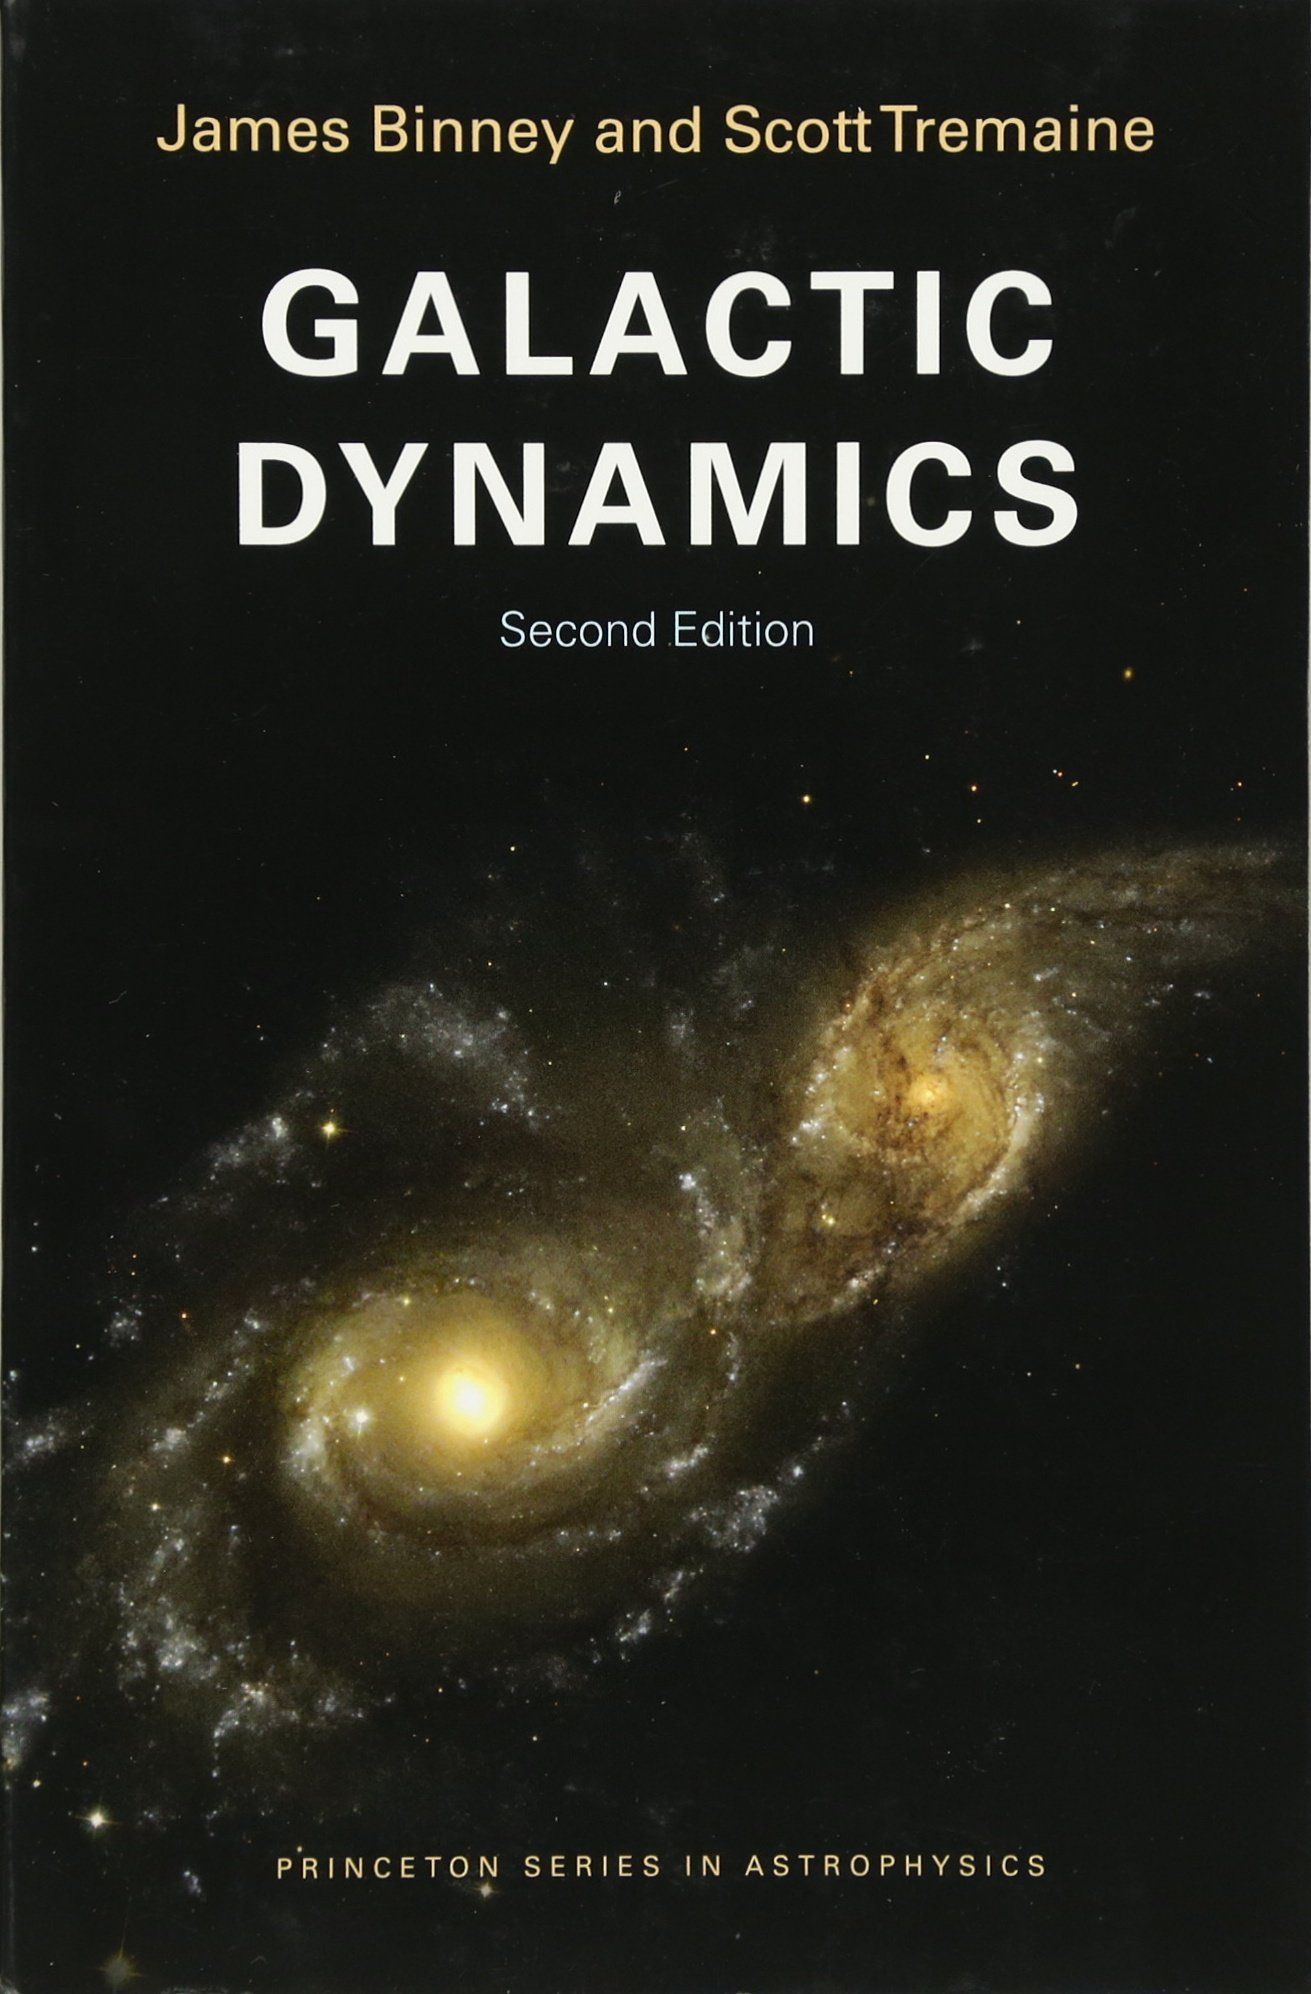 Galactic Dynamics: Second Edition Princeton Series in Astrophysics: Amazon.es: James Binney, Scott Tremaine: Libros en idiomas extranjeros